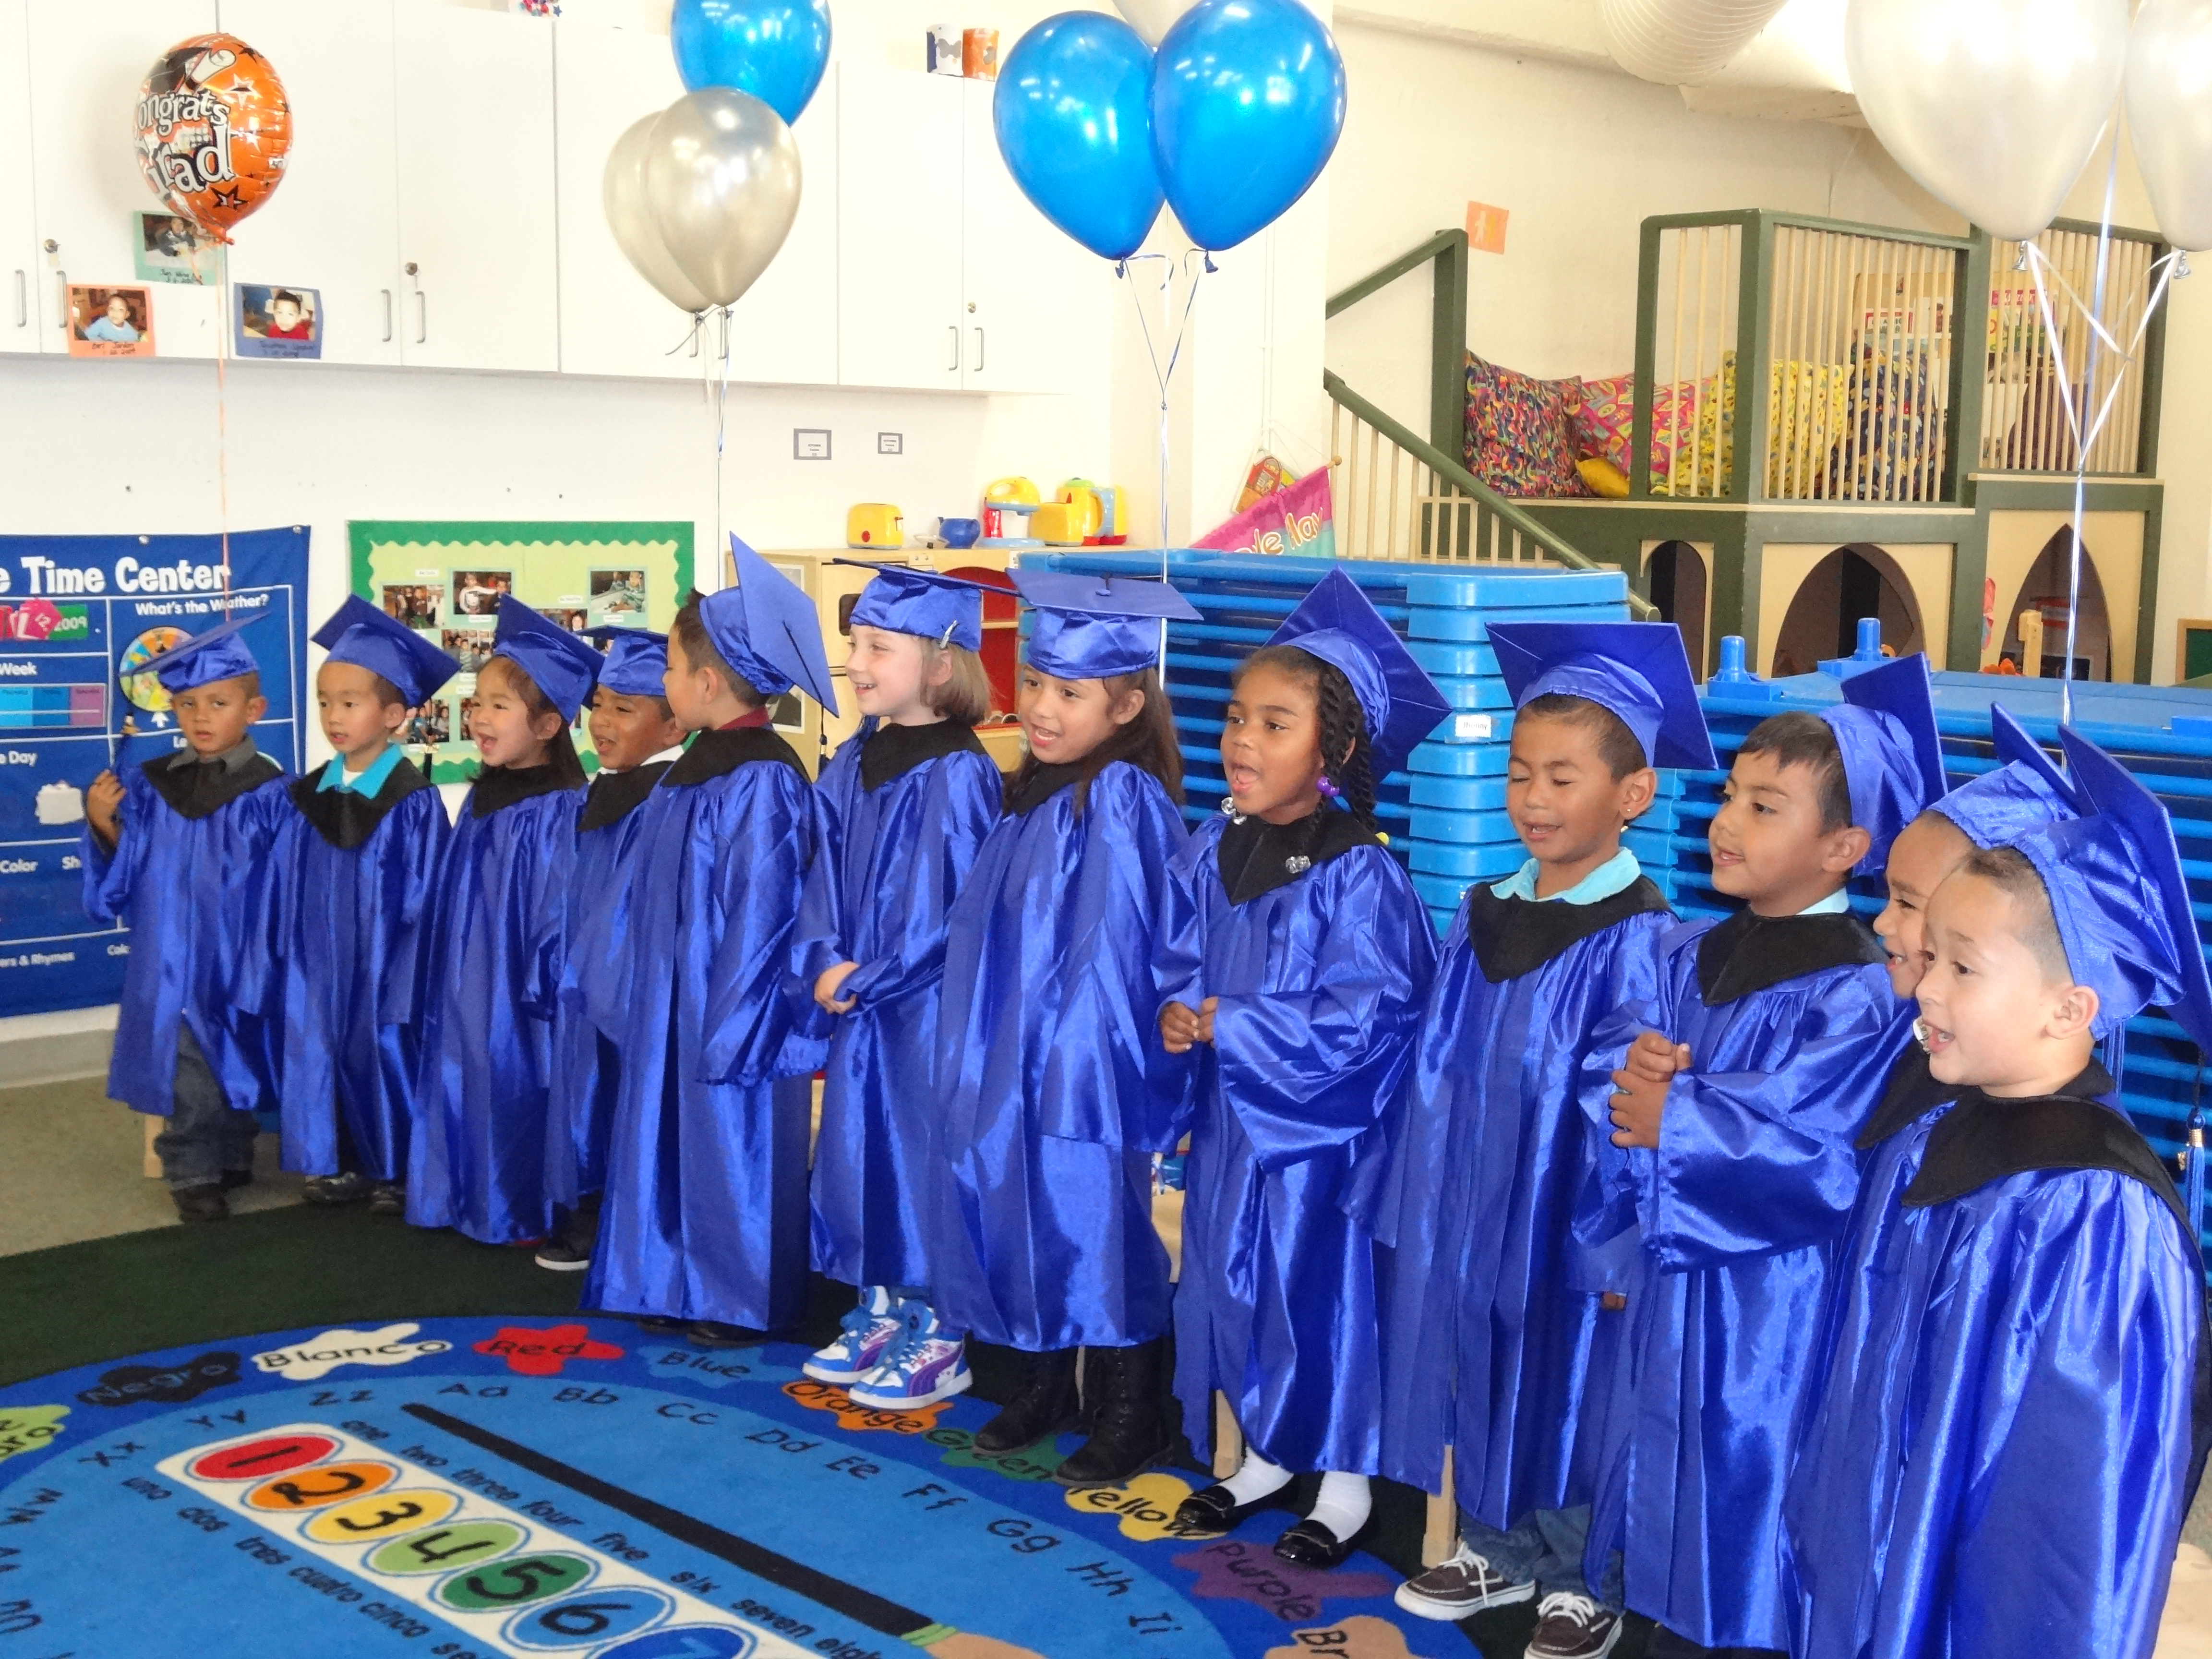 preschool graduation gown | Gowns Ideas